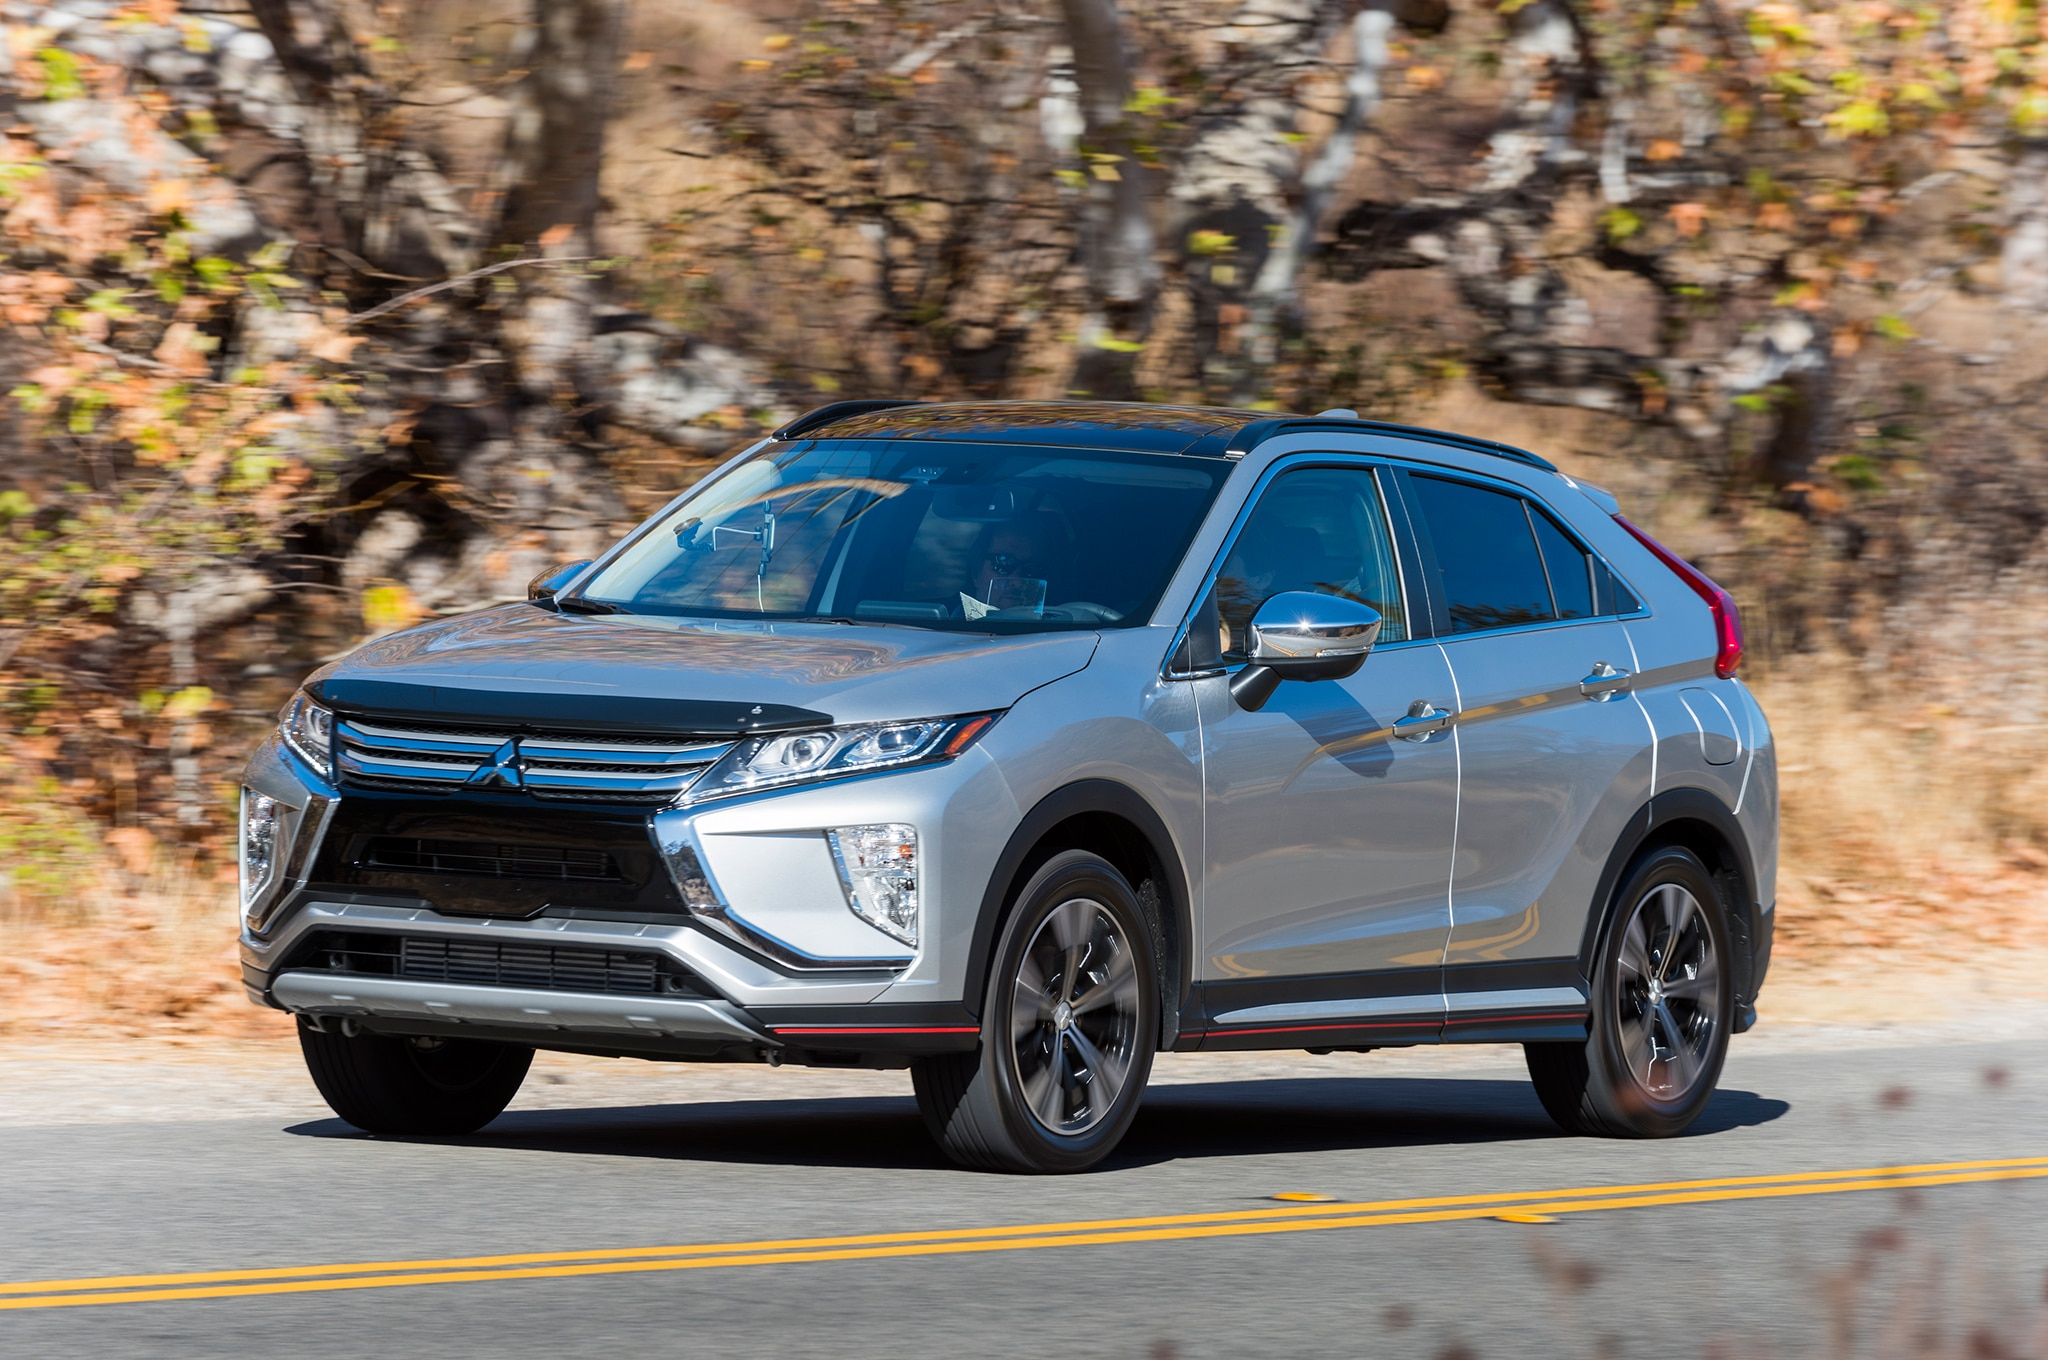 2018 Mitsubishi Eclipse Cross Front Three Quarter In Motion 01